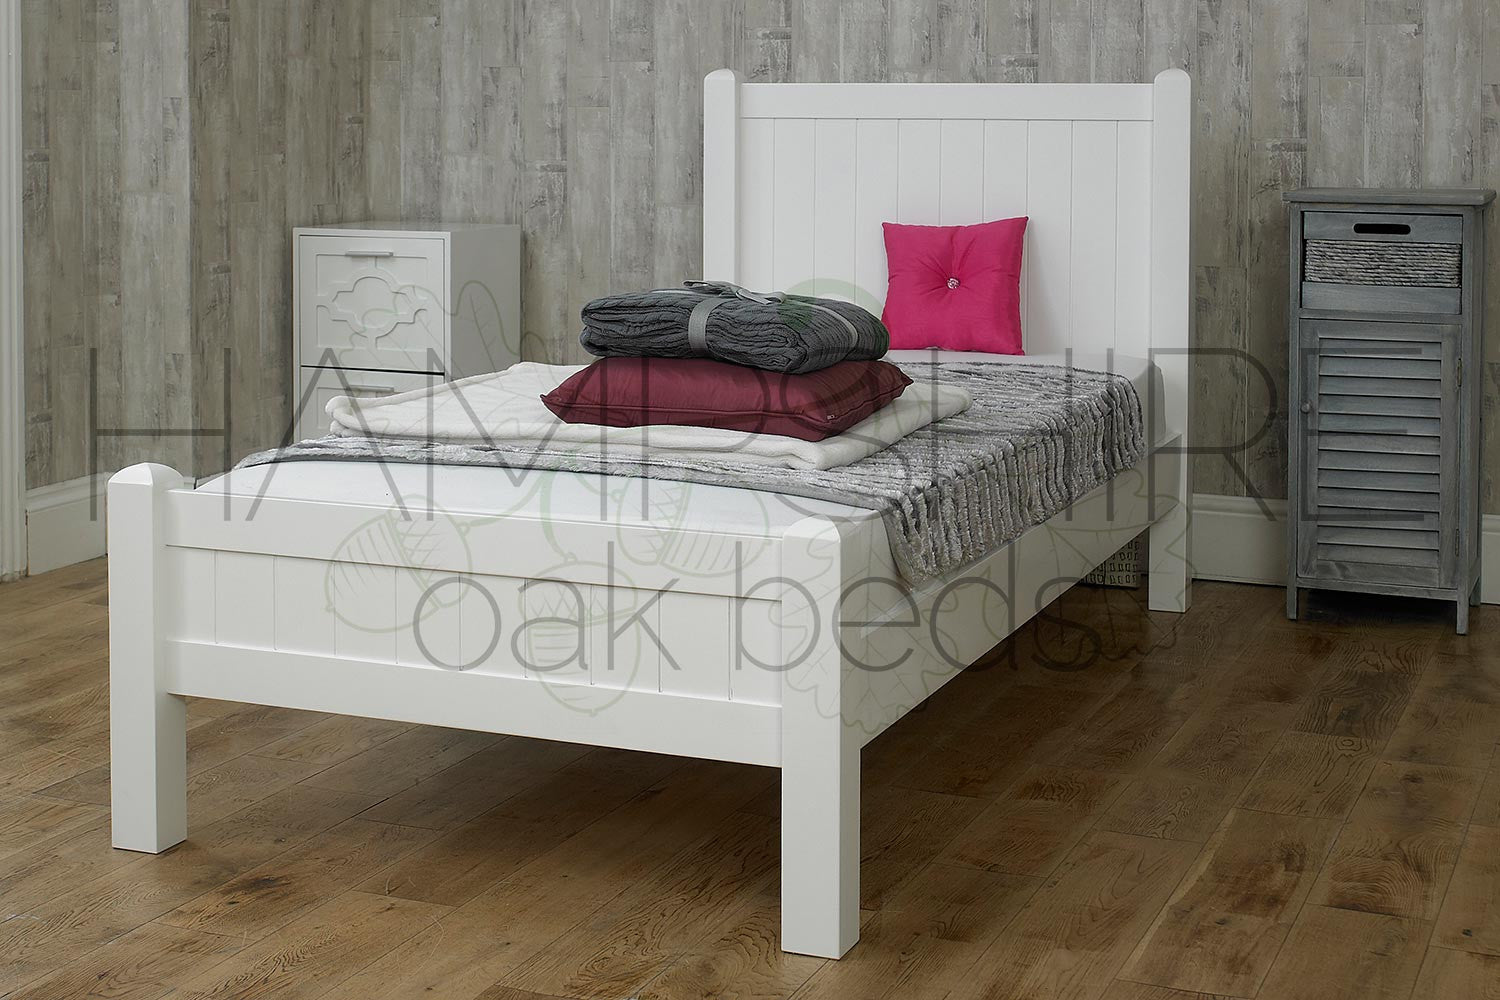 NNW Solid Wood Bed Frame